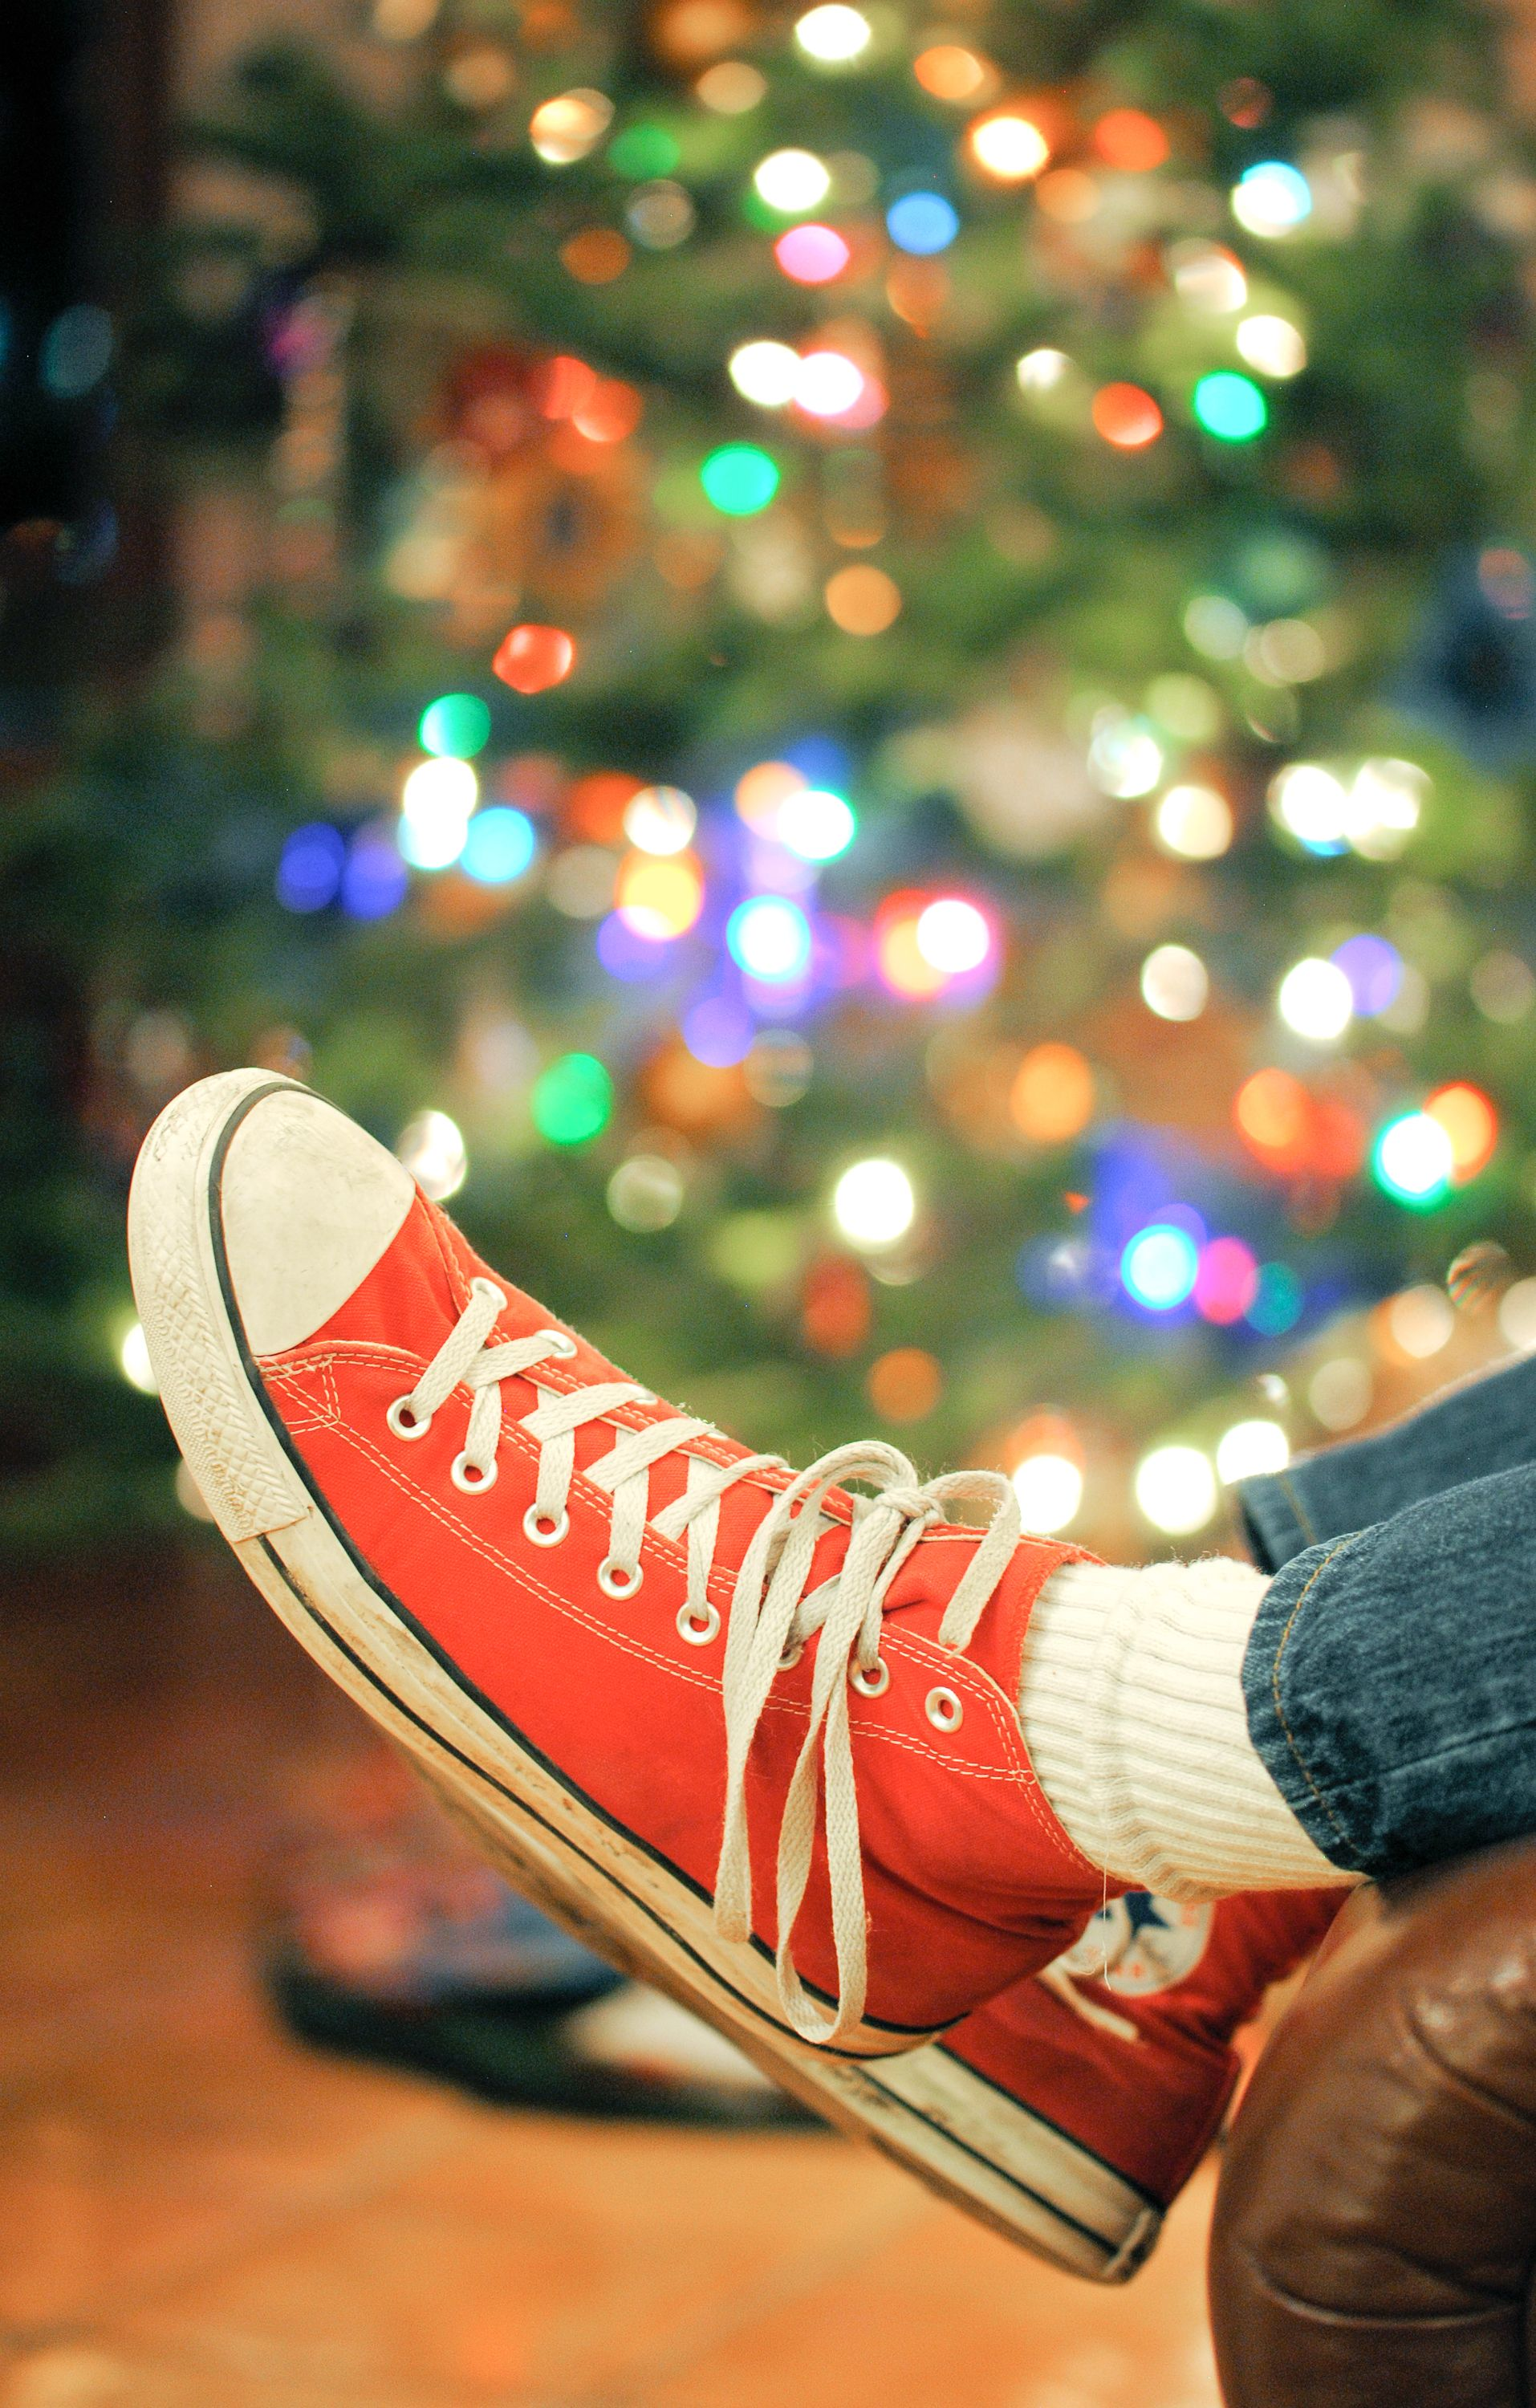 December 11, 2015:  Still Life, Red Converse Shoes, Christmas Tree, Bokeh